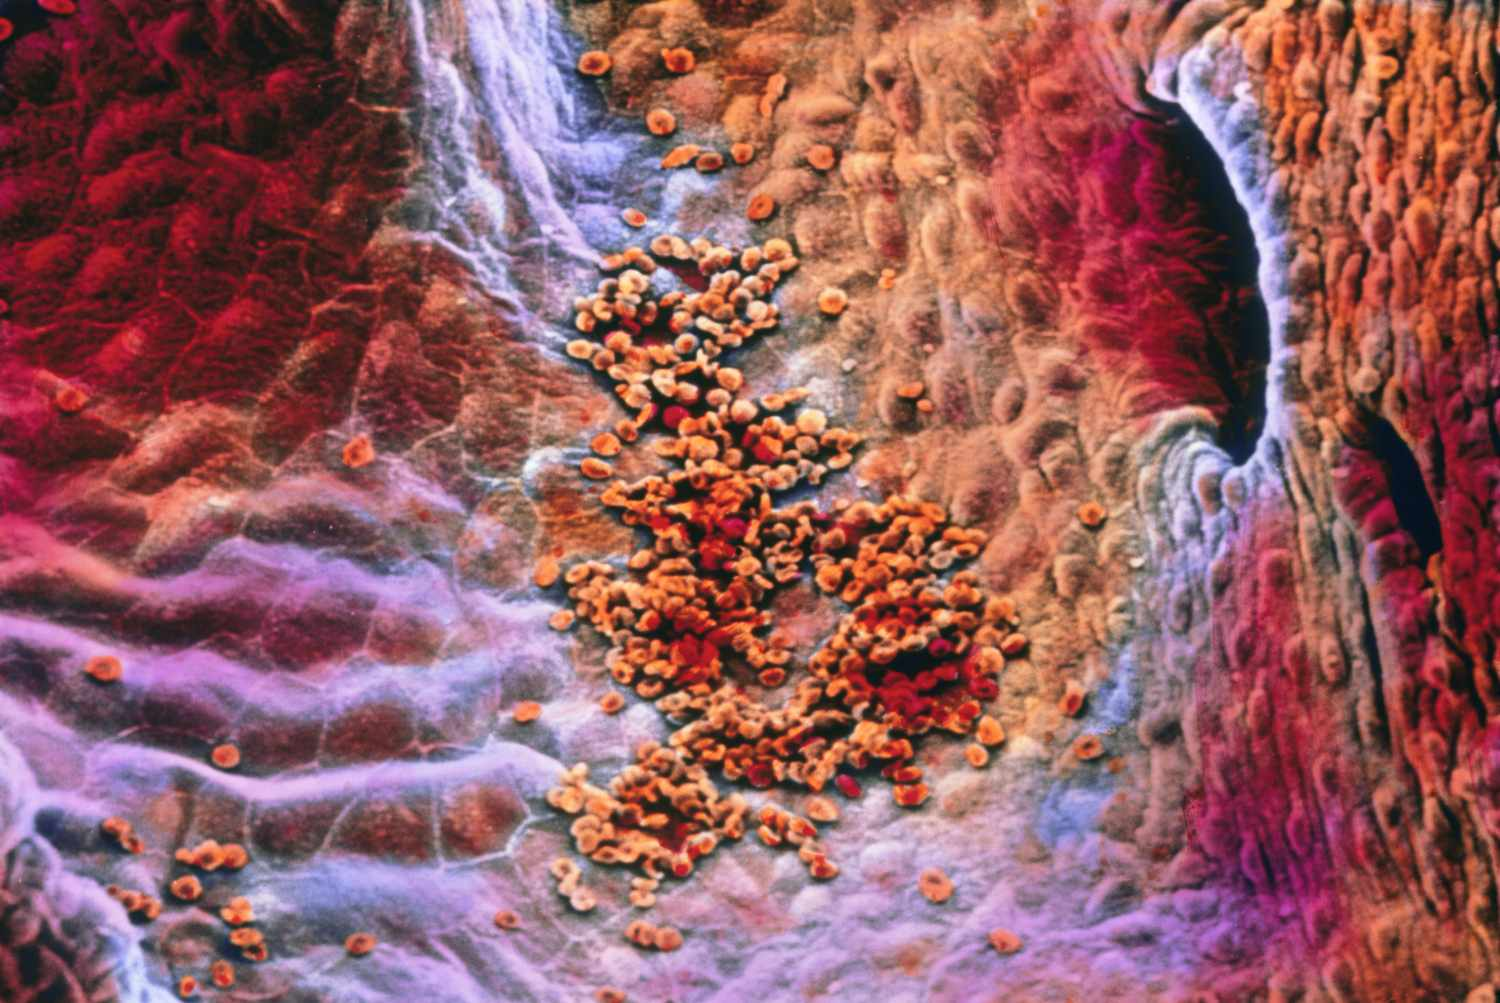 Image of the endocardium layer of the heart taken by a microscope.